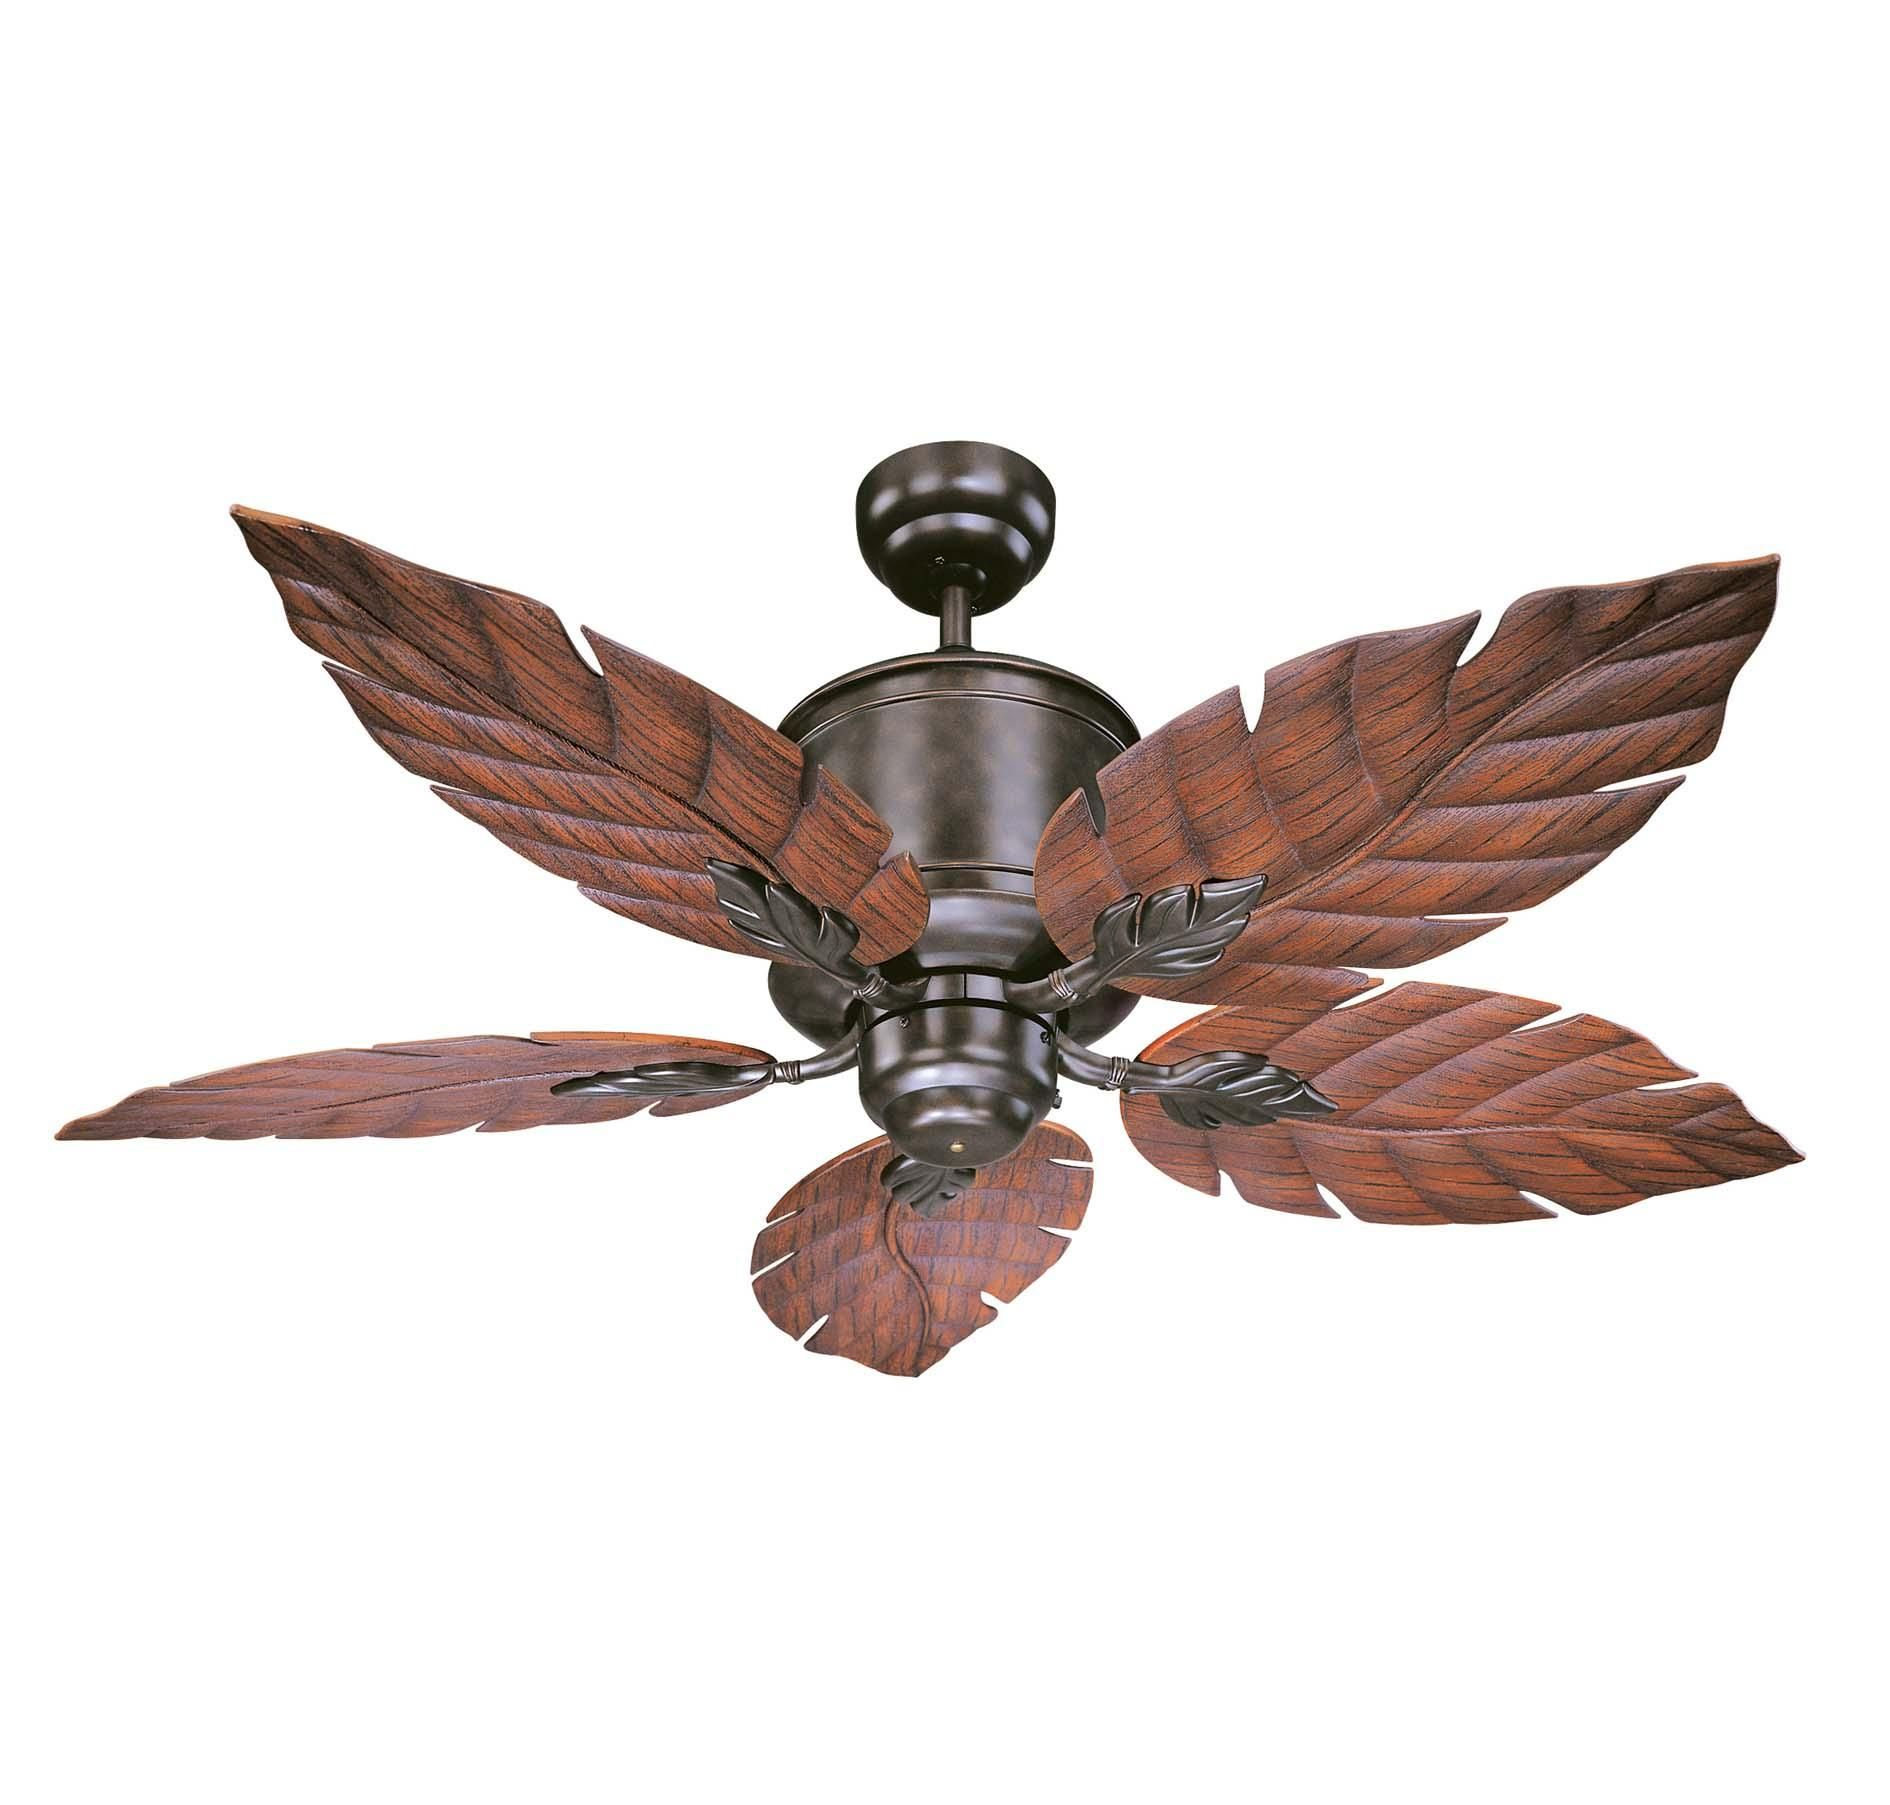 Savoy House The Portico Outdoor Ceiling Fan I would love to win